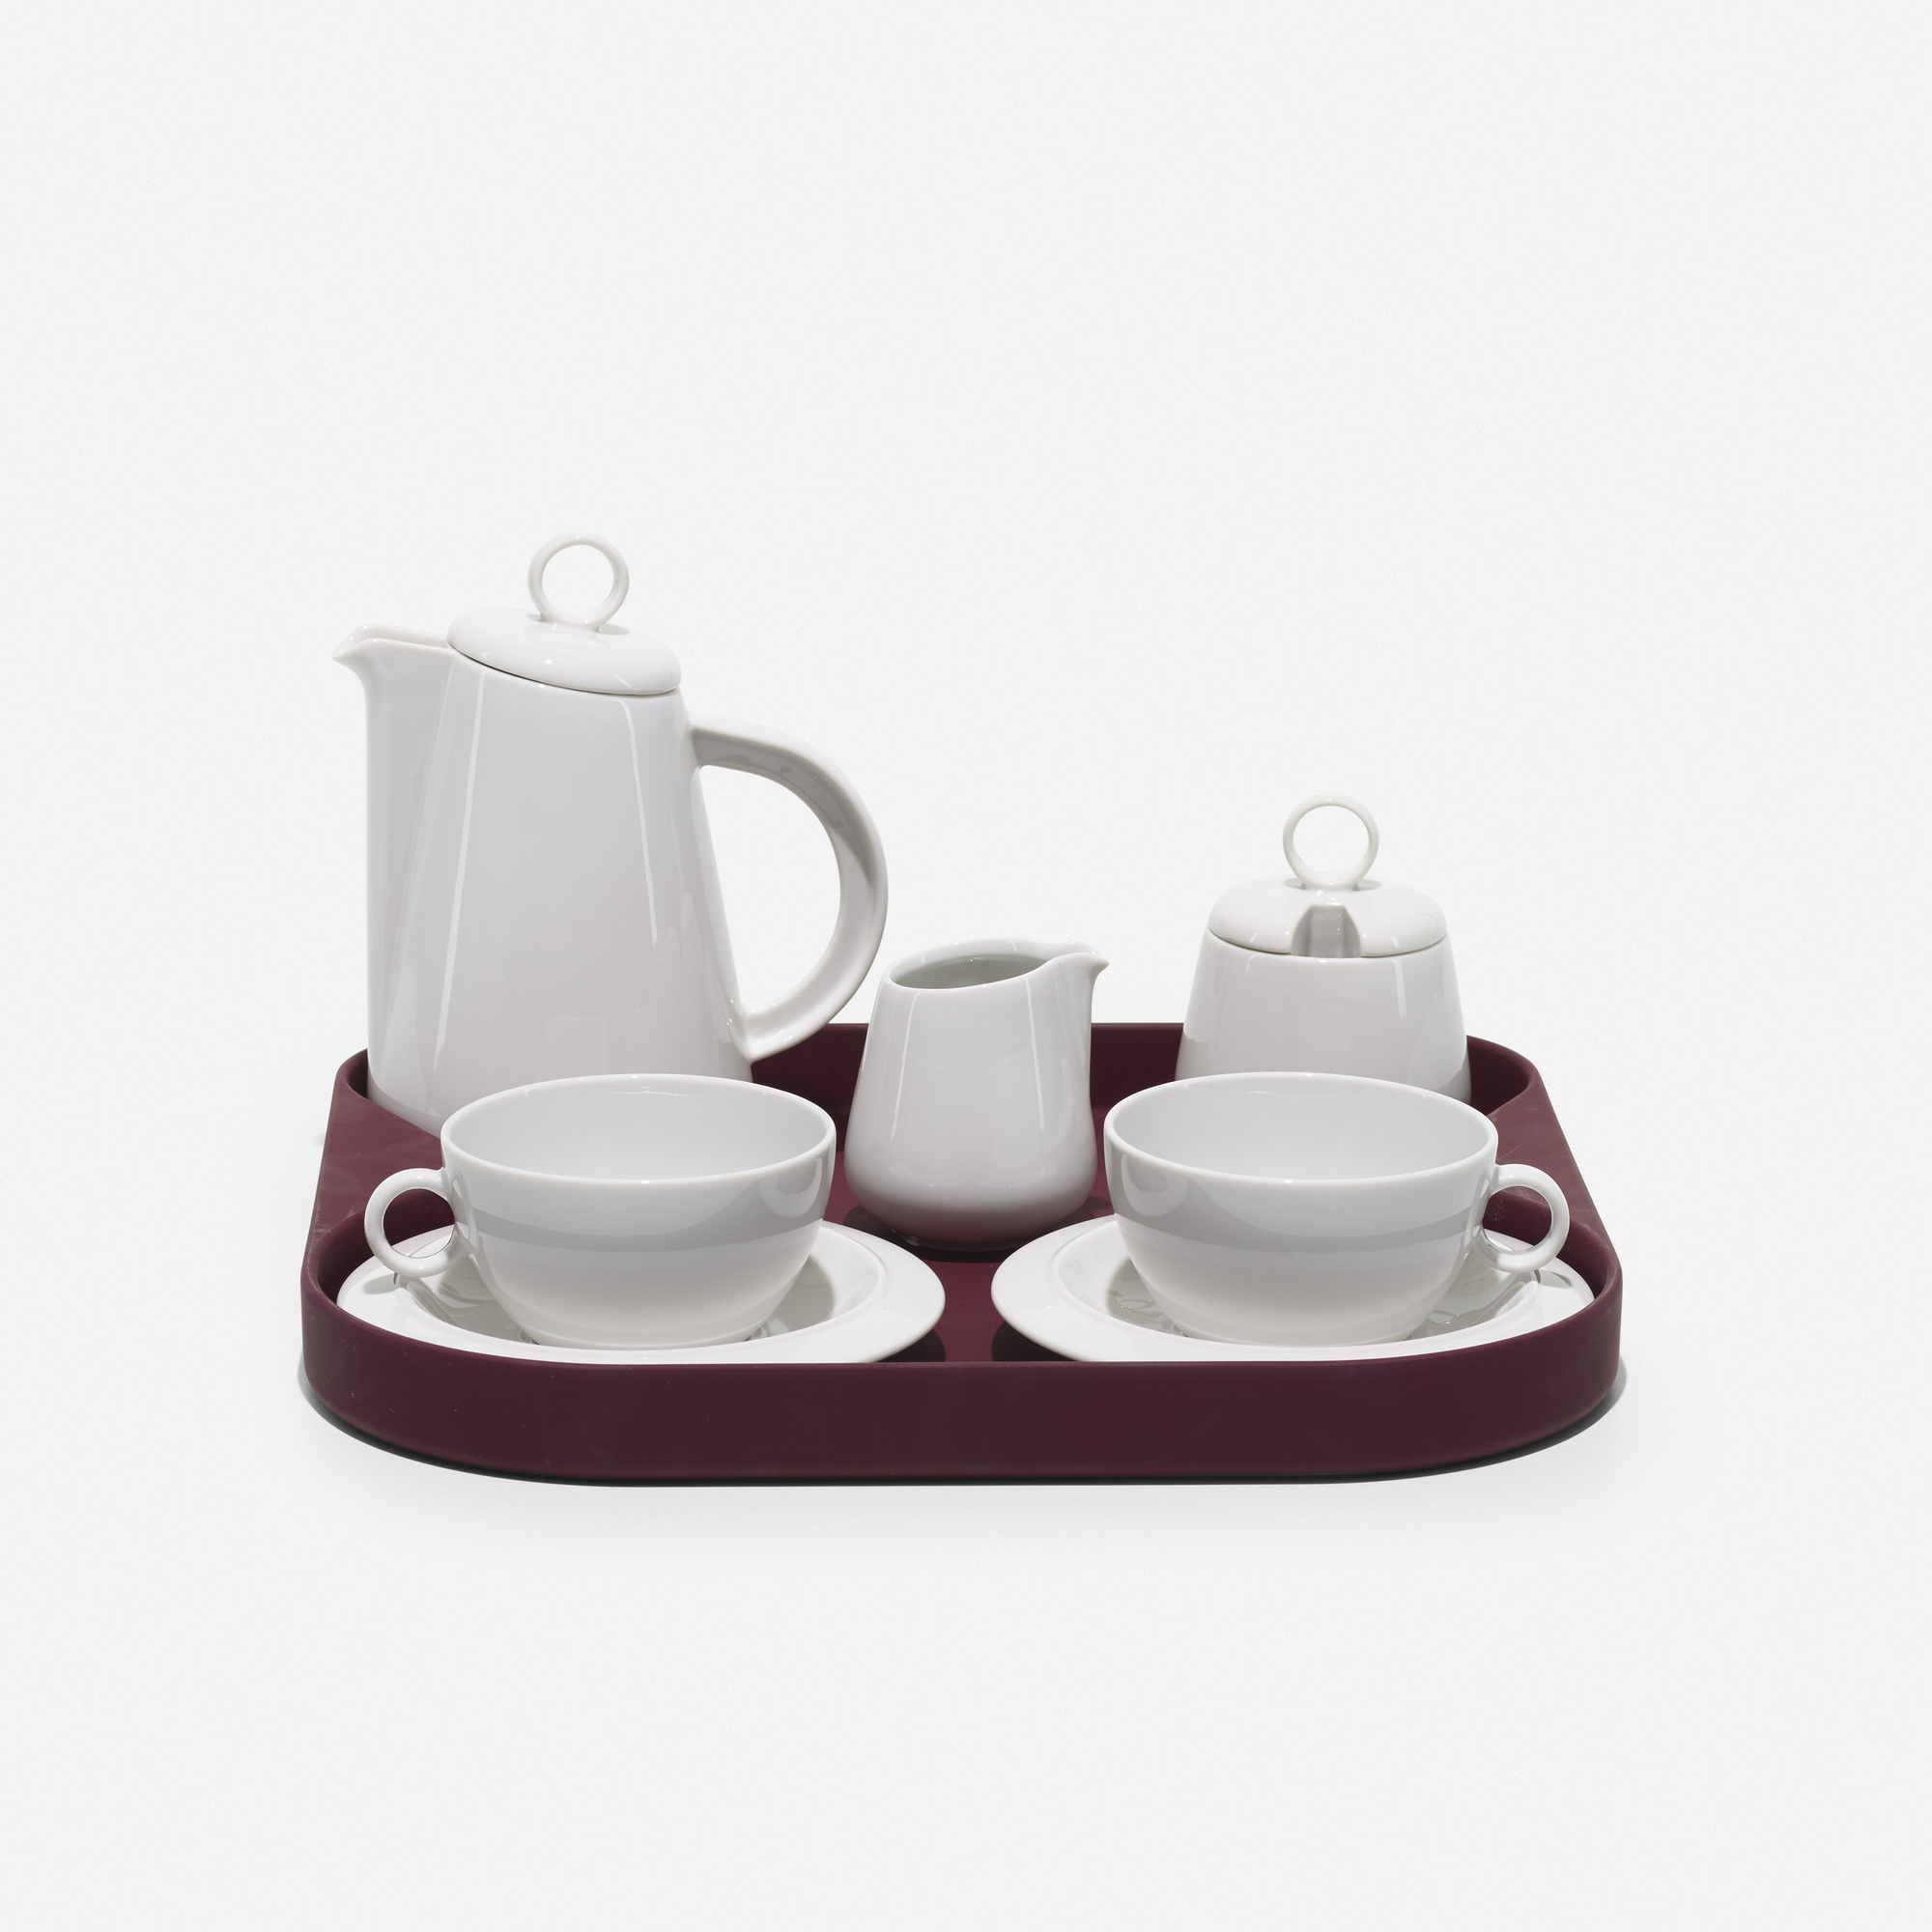 144: Achille Castiglioni / Tea for Two tea service (1 of 2)